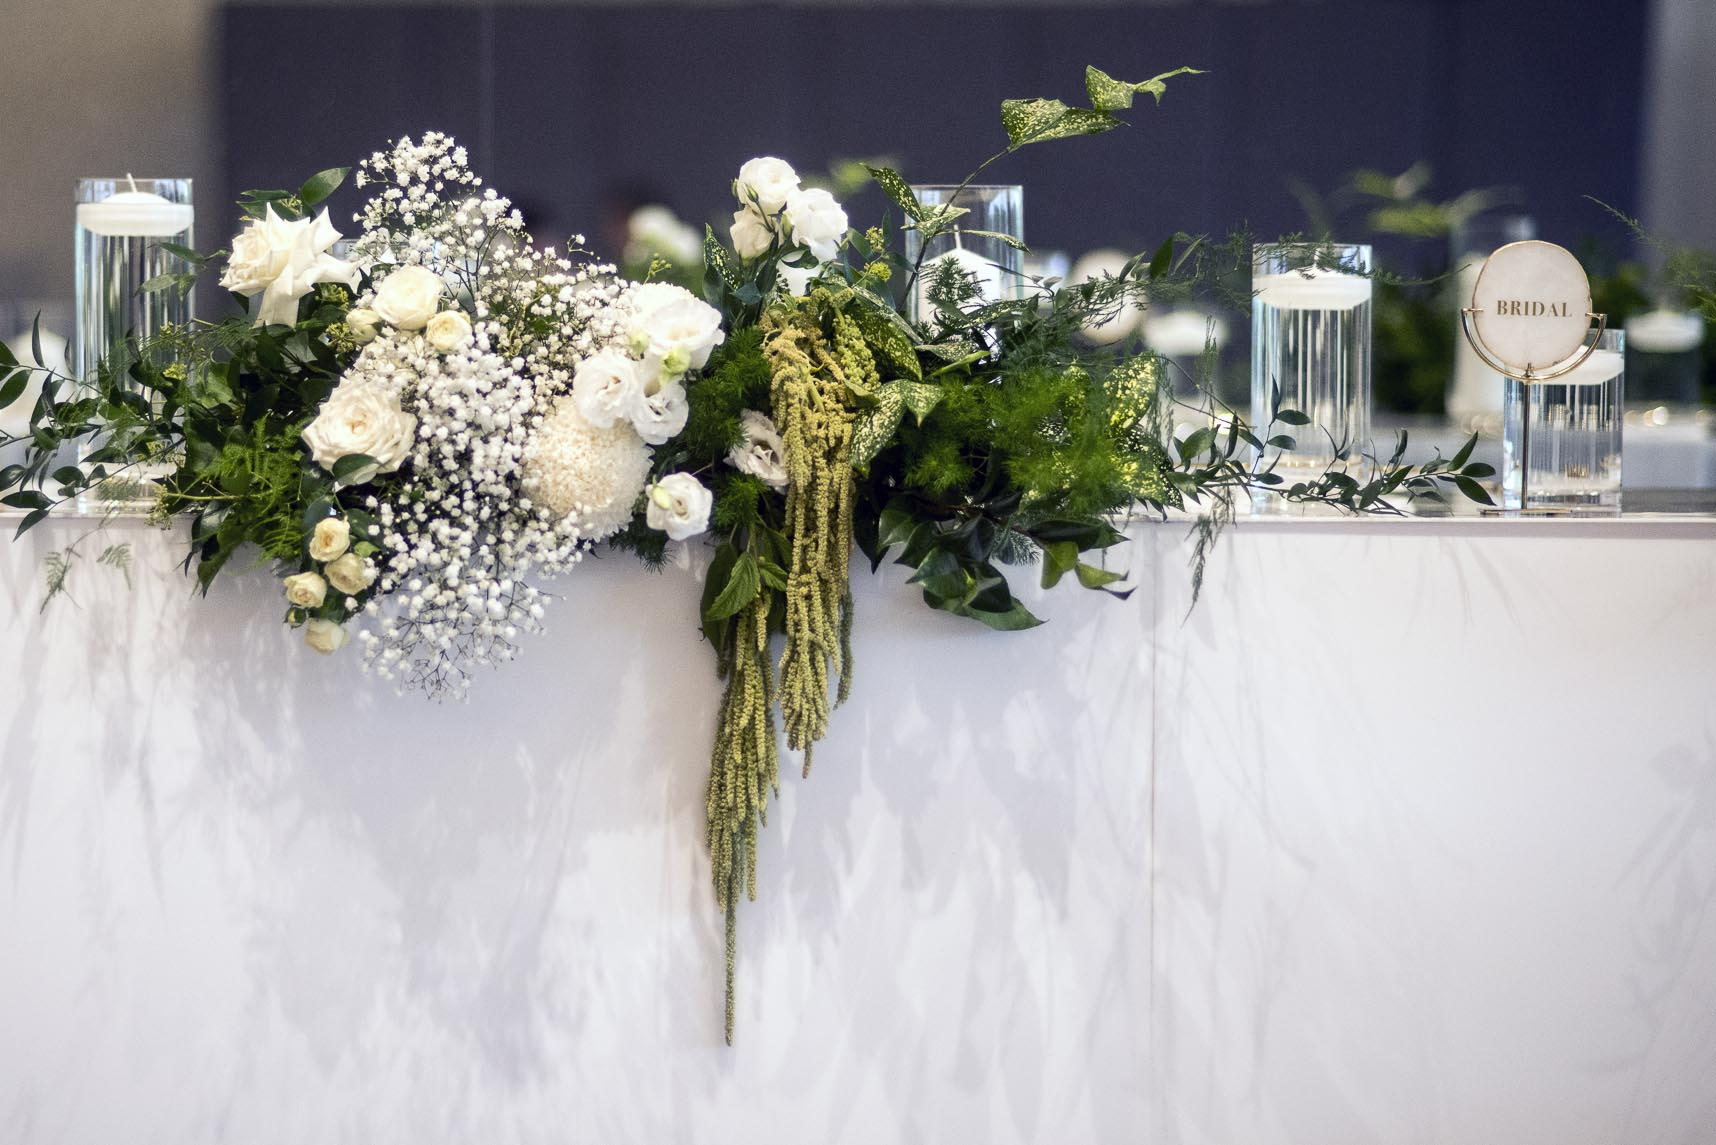 Bridal table flowers - greens & creams